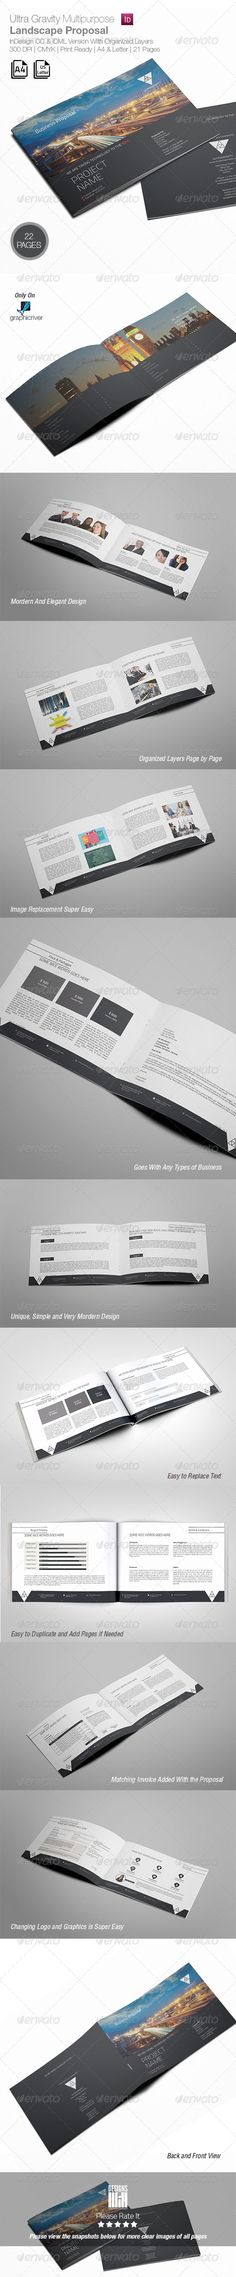 Buy Ultra Gravity Multipurpose Landscape Proposal by designsmill on GraphicRiver. Details InDesign File with Properly organized layers 22 Pages Professional fully Editable InDesign File (. Stationery Printing, Stationery Templates, Invoice Template, Stationery Design, Print Templates, Best Proposals, Invoice Design, Print Design, Graphic Design